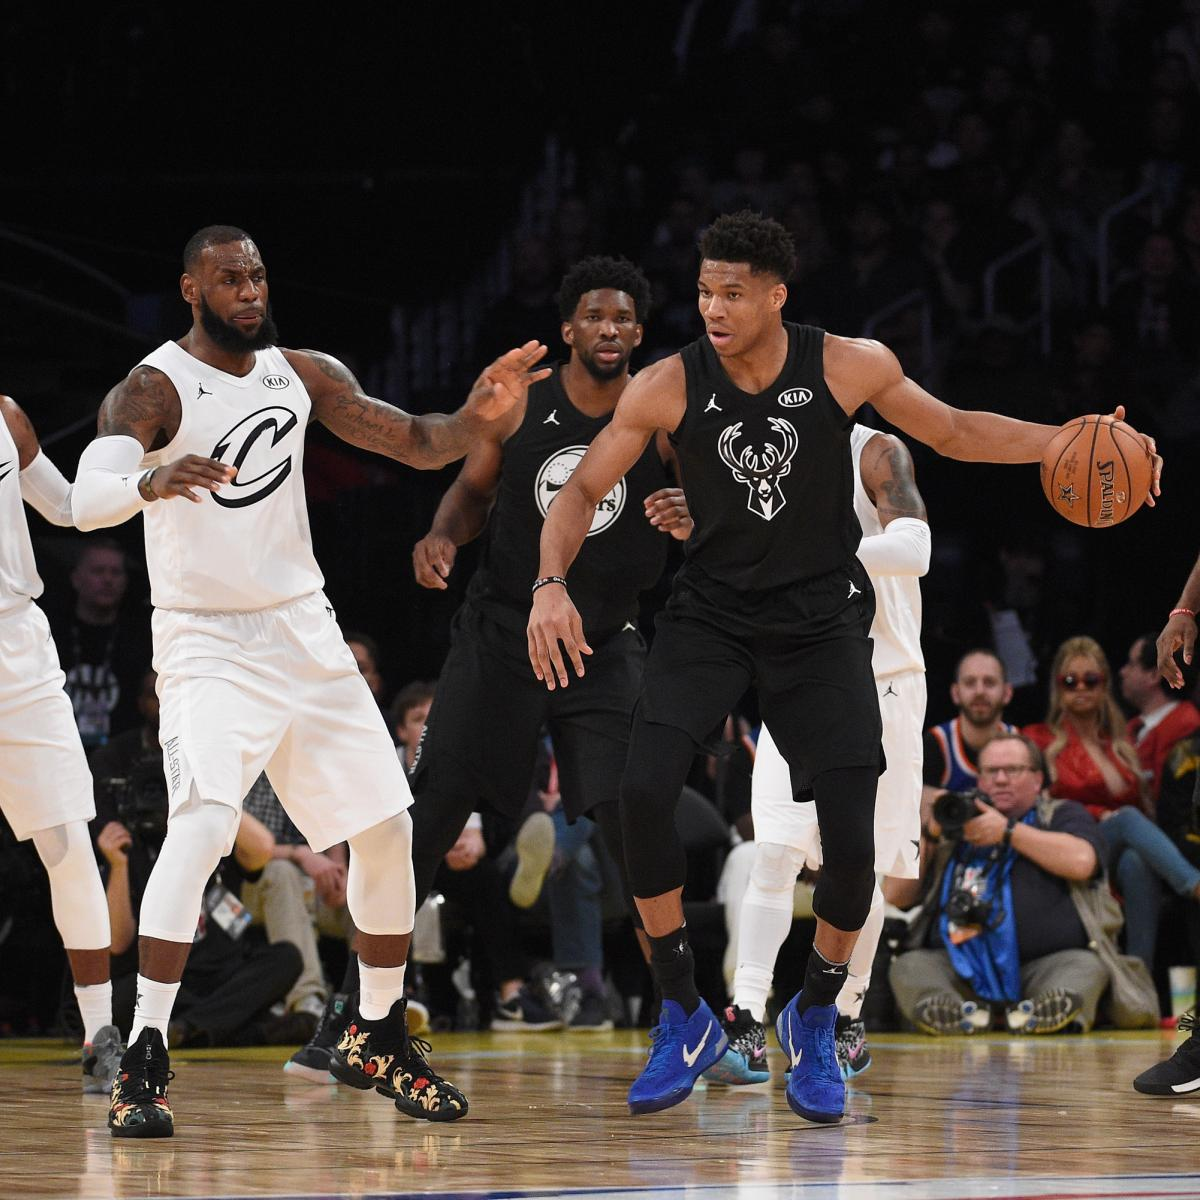 Nba Celebrity All Star Game 2019 Rosters Start Time Tv: NBA All-Star Game 2019: TV Schedule, Time And LeBron Vs